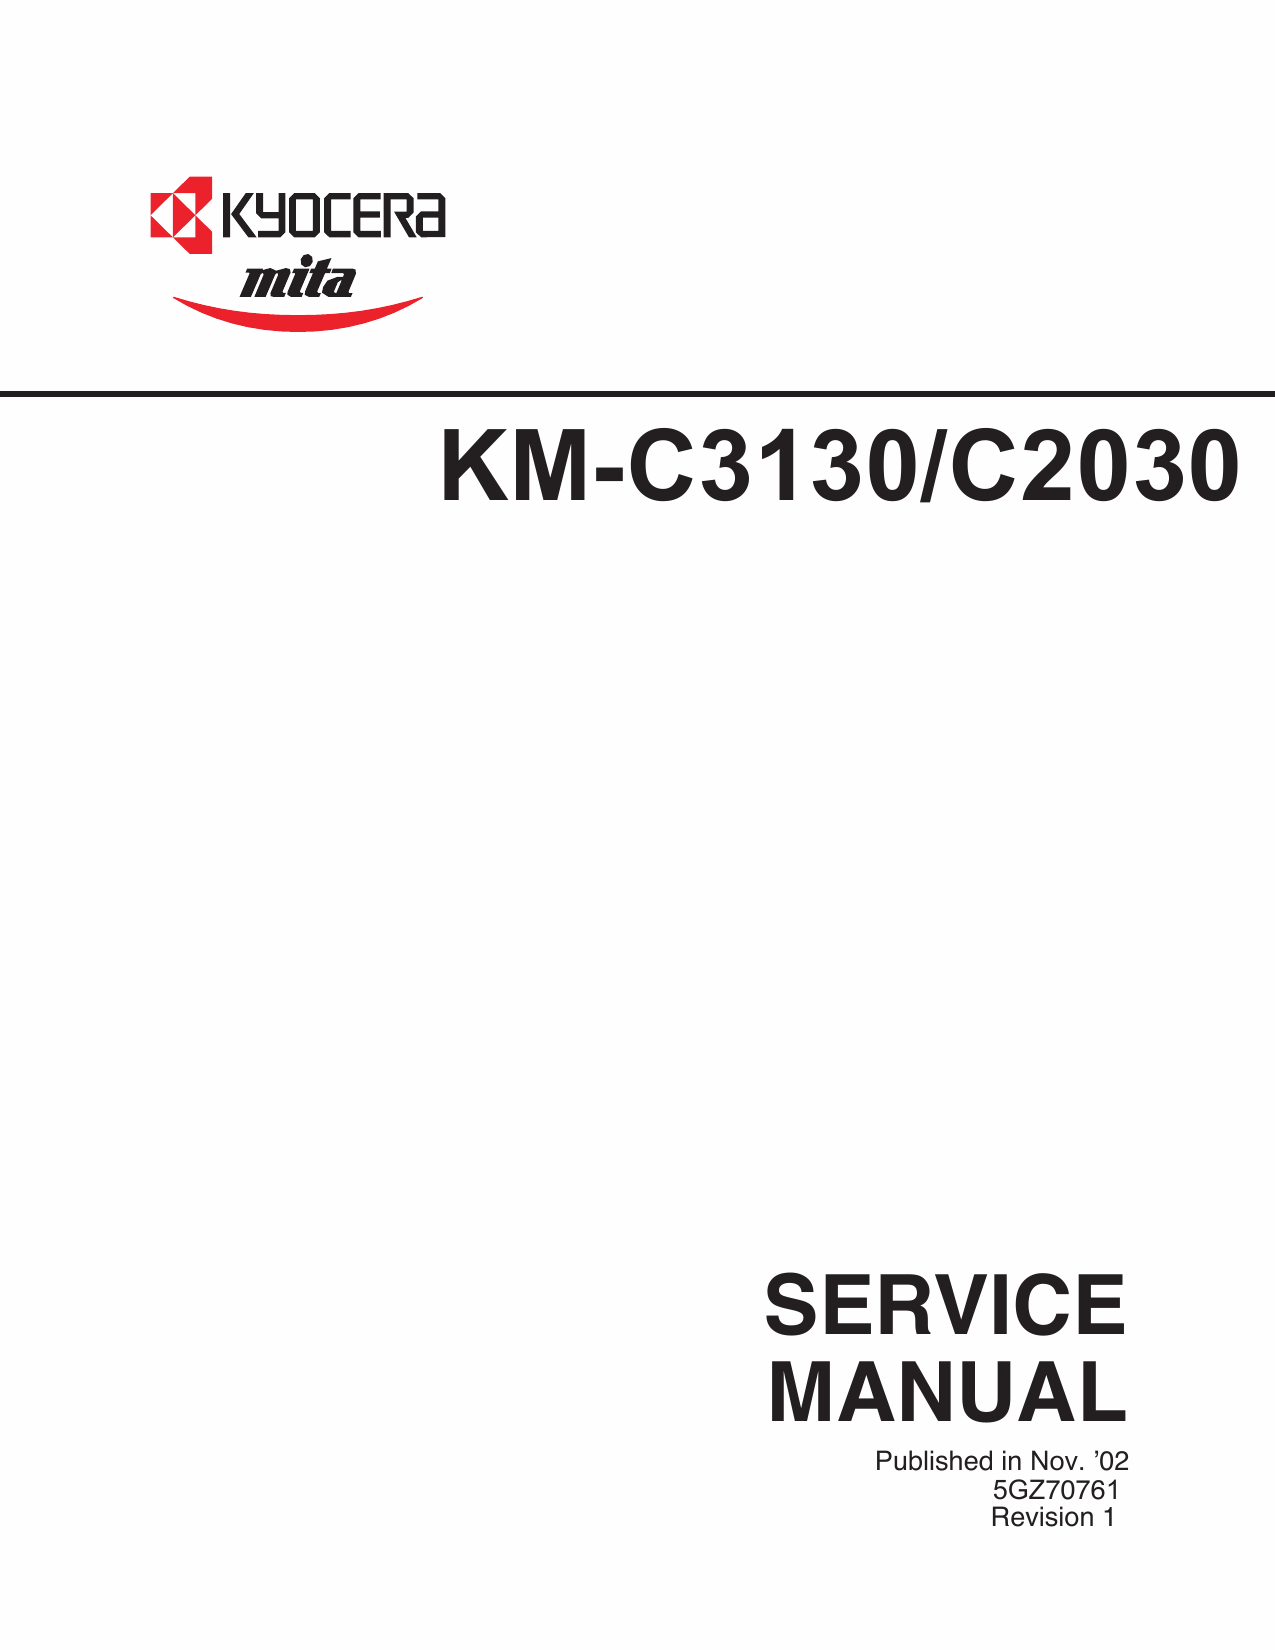 KYOCERA ColorCopier KM-C2030 C3130 Parts and Service Manual-1